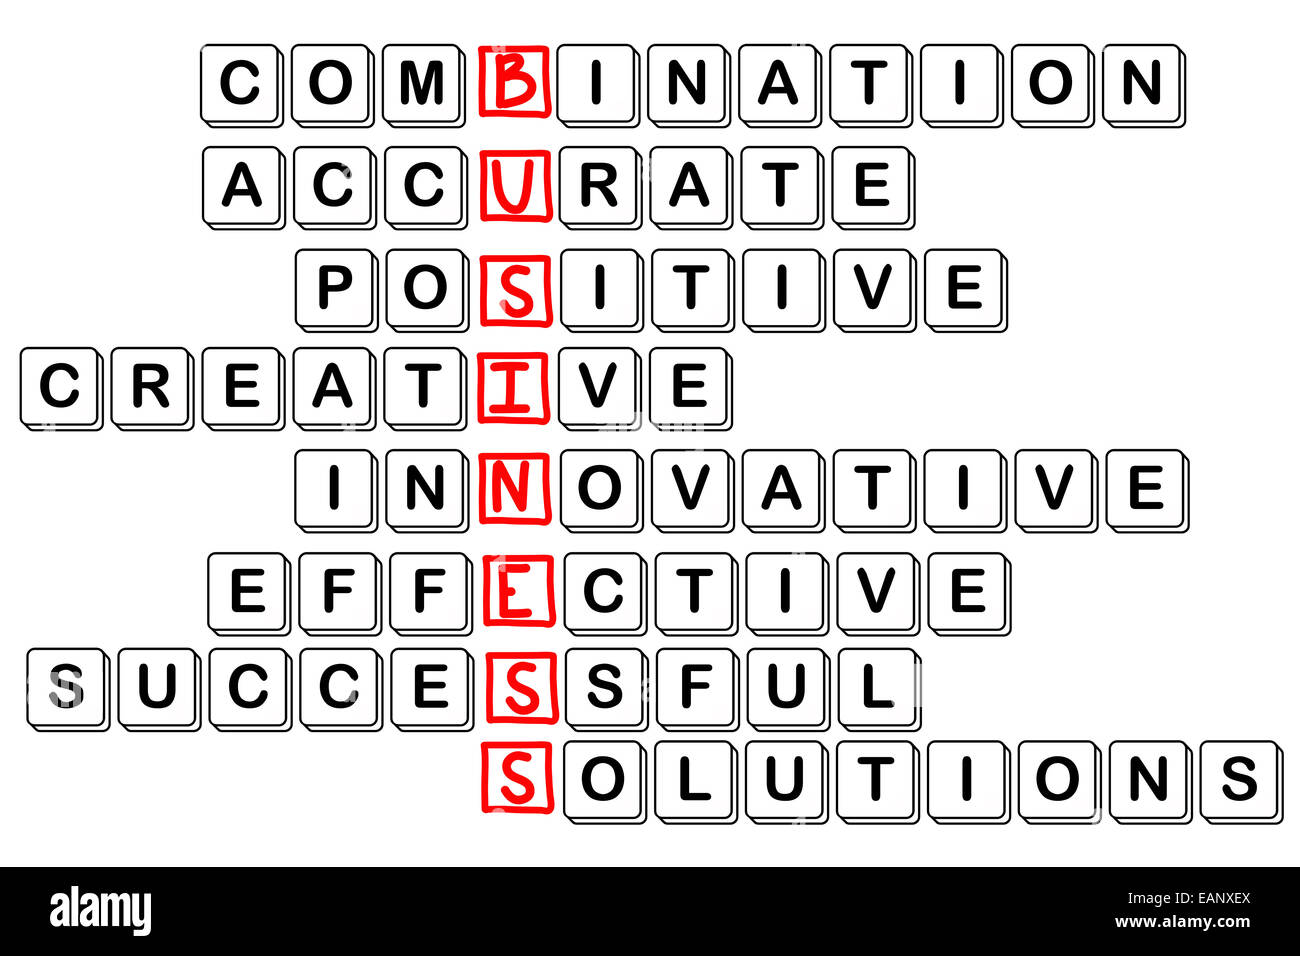 acronym concept of business -combinative,accura te,positive,creativ e,innovative,effect ive,cuccessful,solu tions, - Stock Image